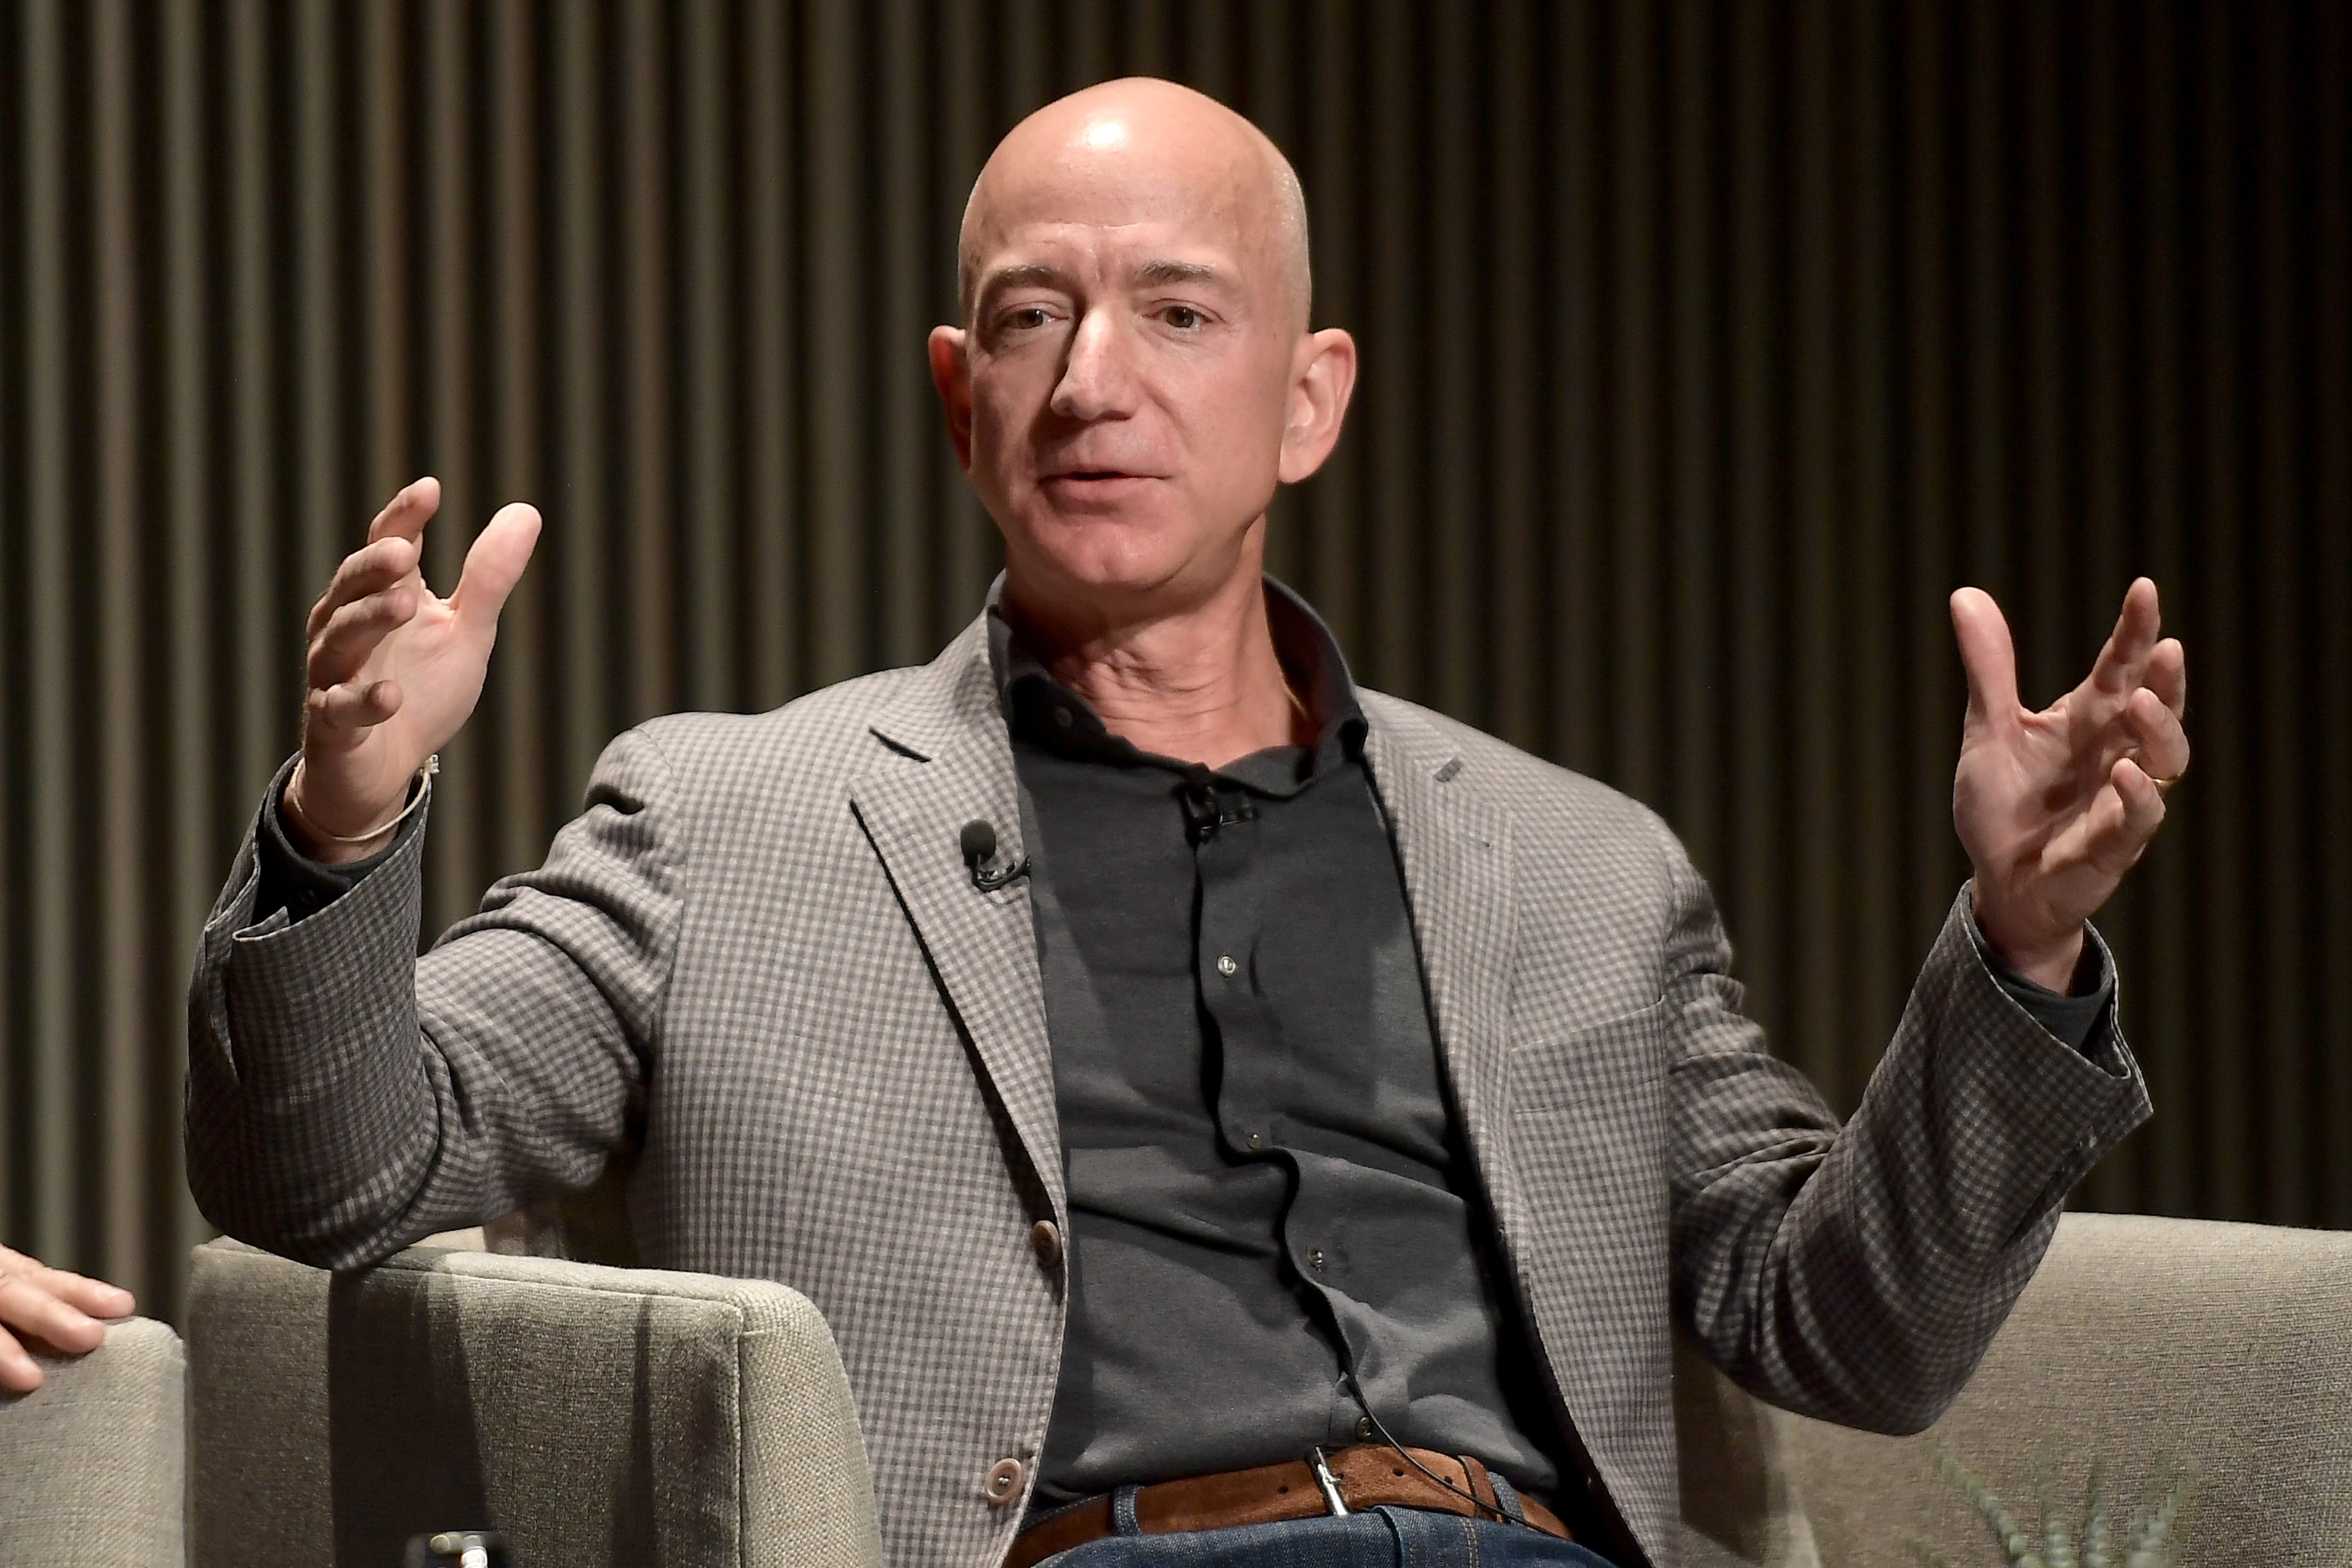 Jeff Bezos speaks onstage at WIRED25 Summit: WIRED Celebrates 25th Anniversary With Tech Icons Of The Past & Future on October 15, 2018 in San Francisco, California. Matt Winkelmeyer/Getty Images for WIRED25